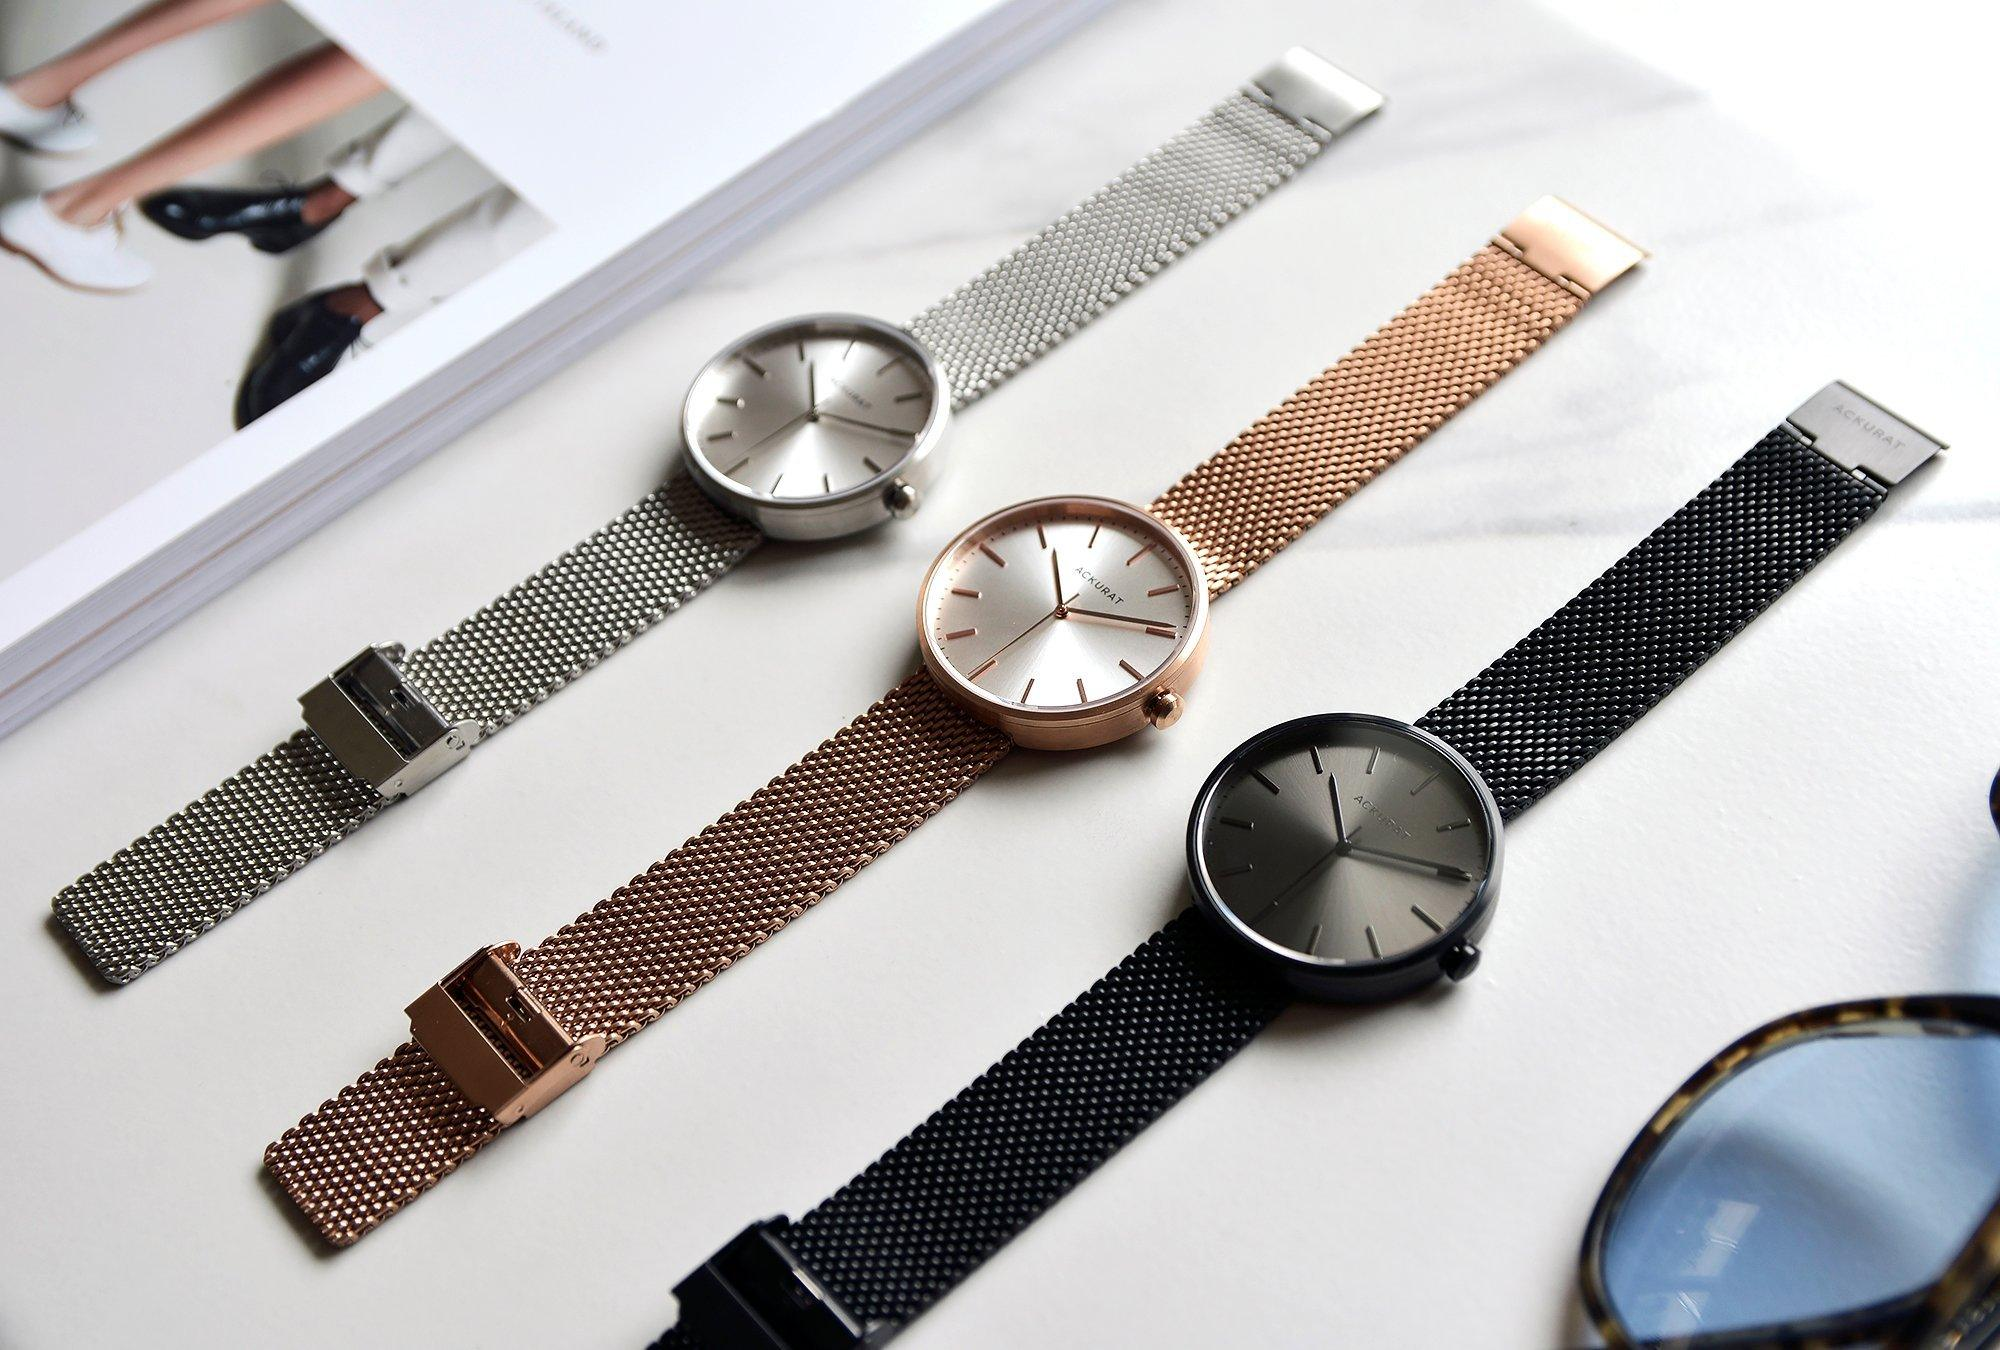 Contemporary watches influenced by the past